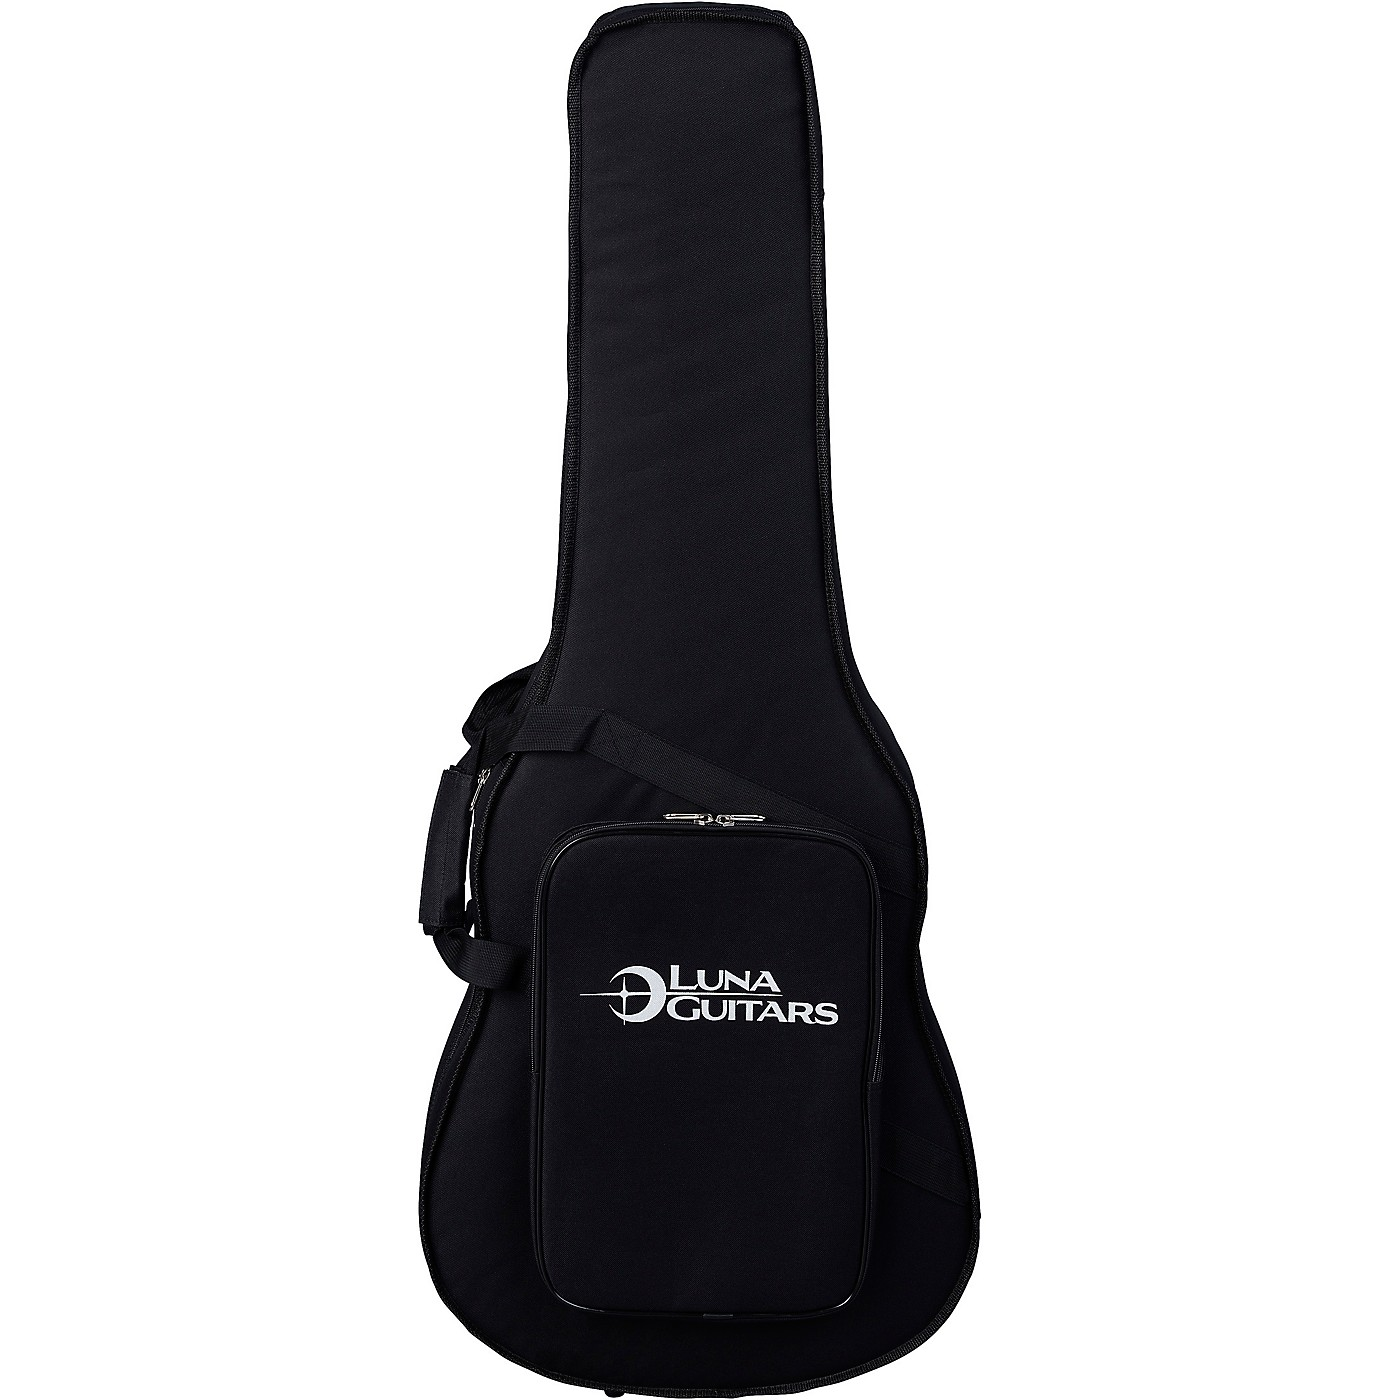 Luna Guitars Lightweight Case for Dreadnought and Concert Acoustic Guitars thumbnail